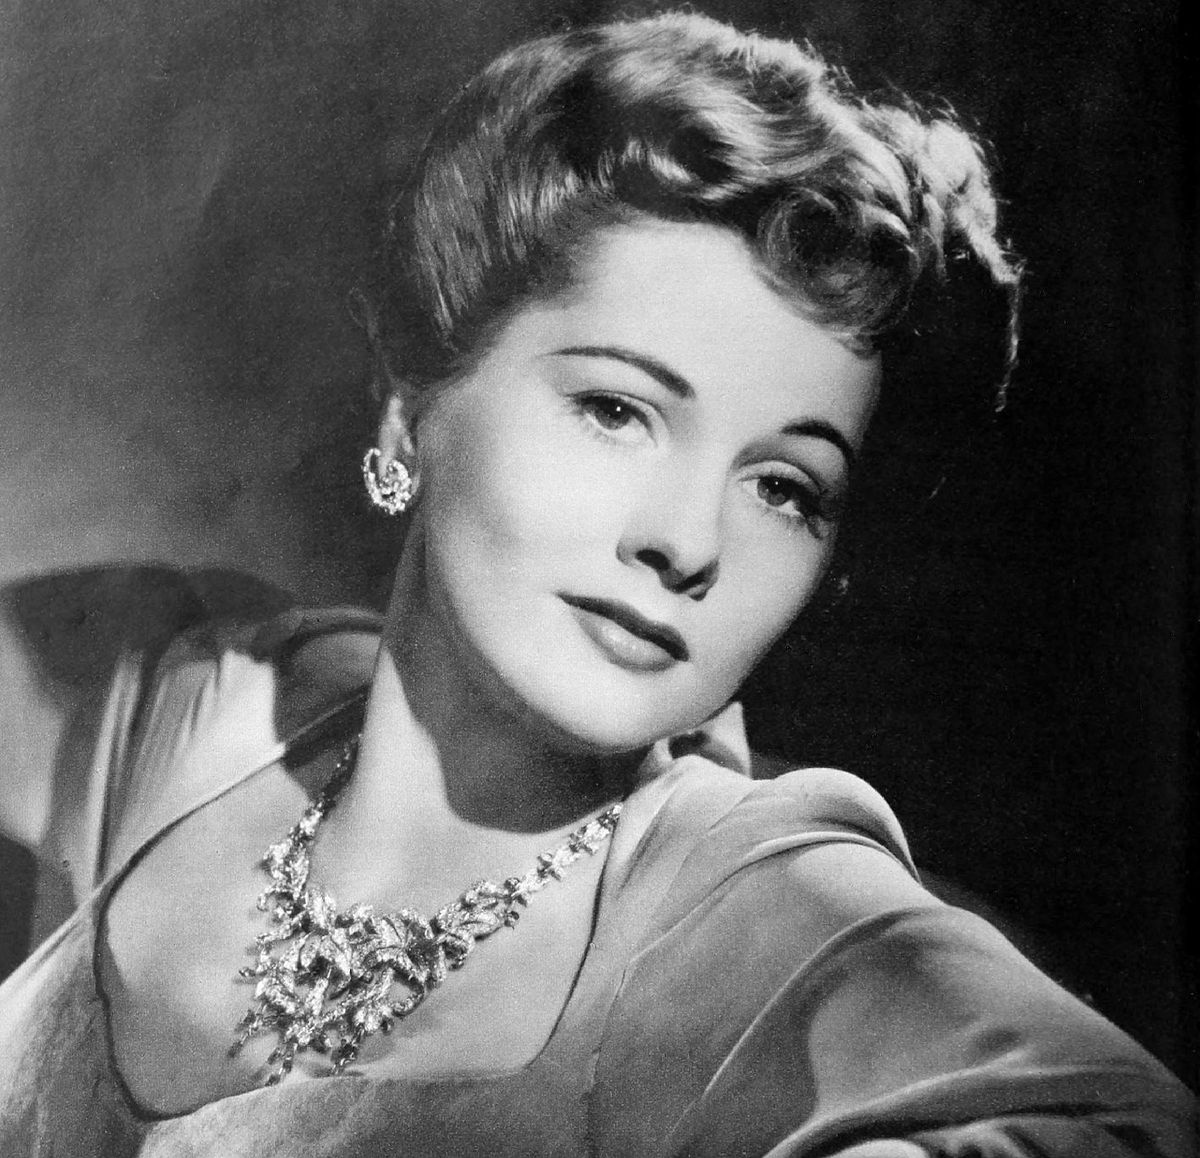 https://upload.wikimedia.org/wikipedia/commons/thumb/a/a7/Joan_Fontaine_1942.jpg/1200px-Joan_Fontaine_1942.jpg